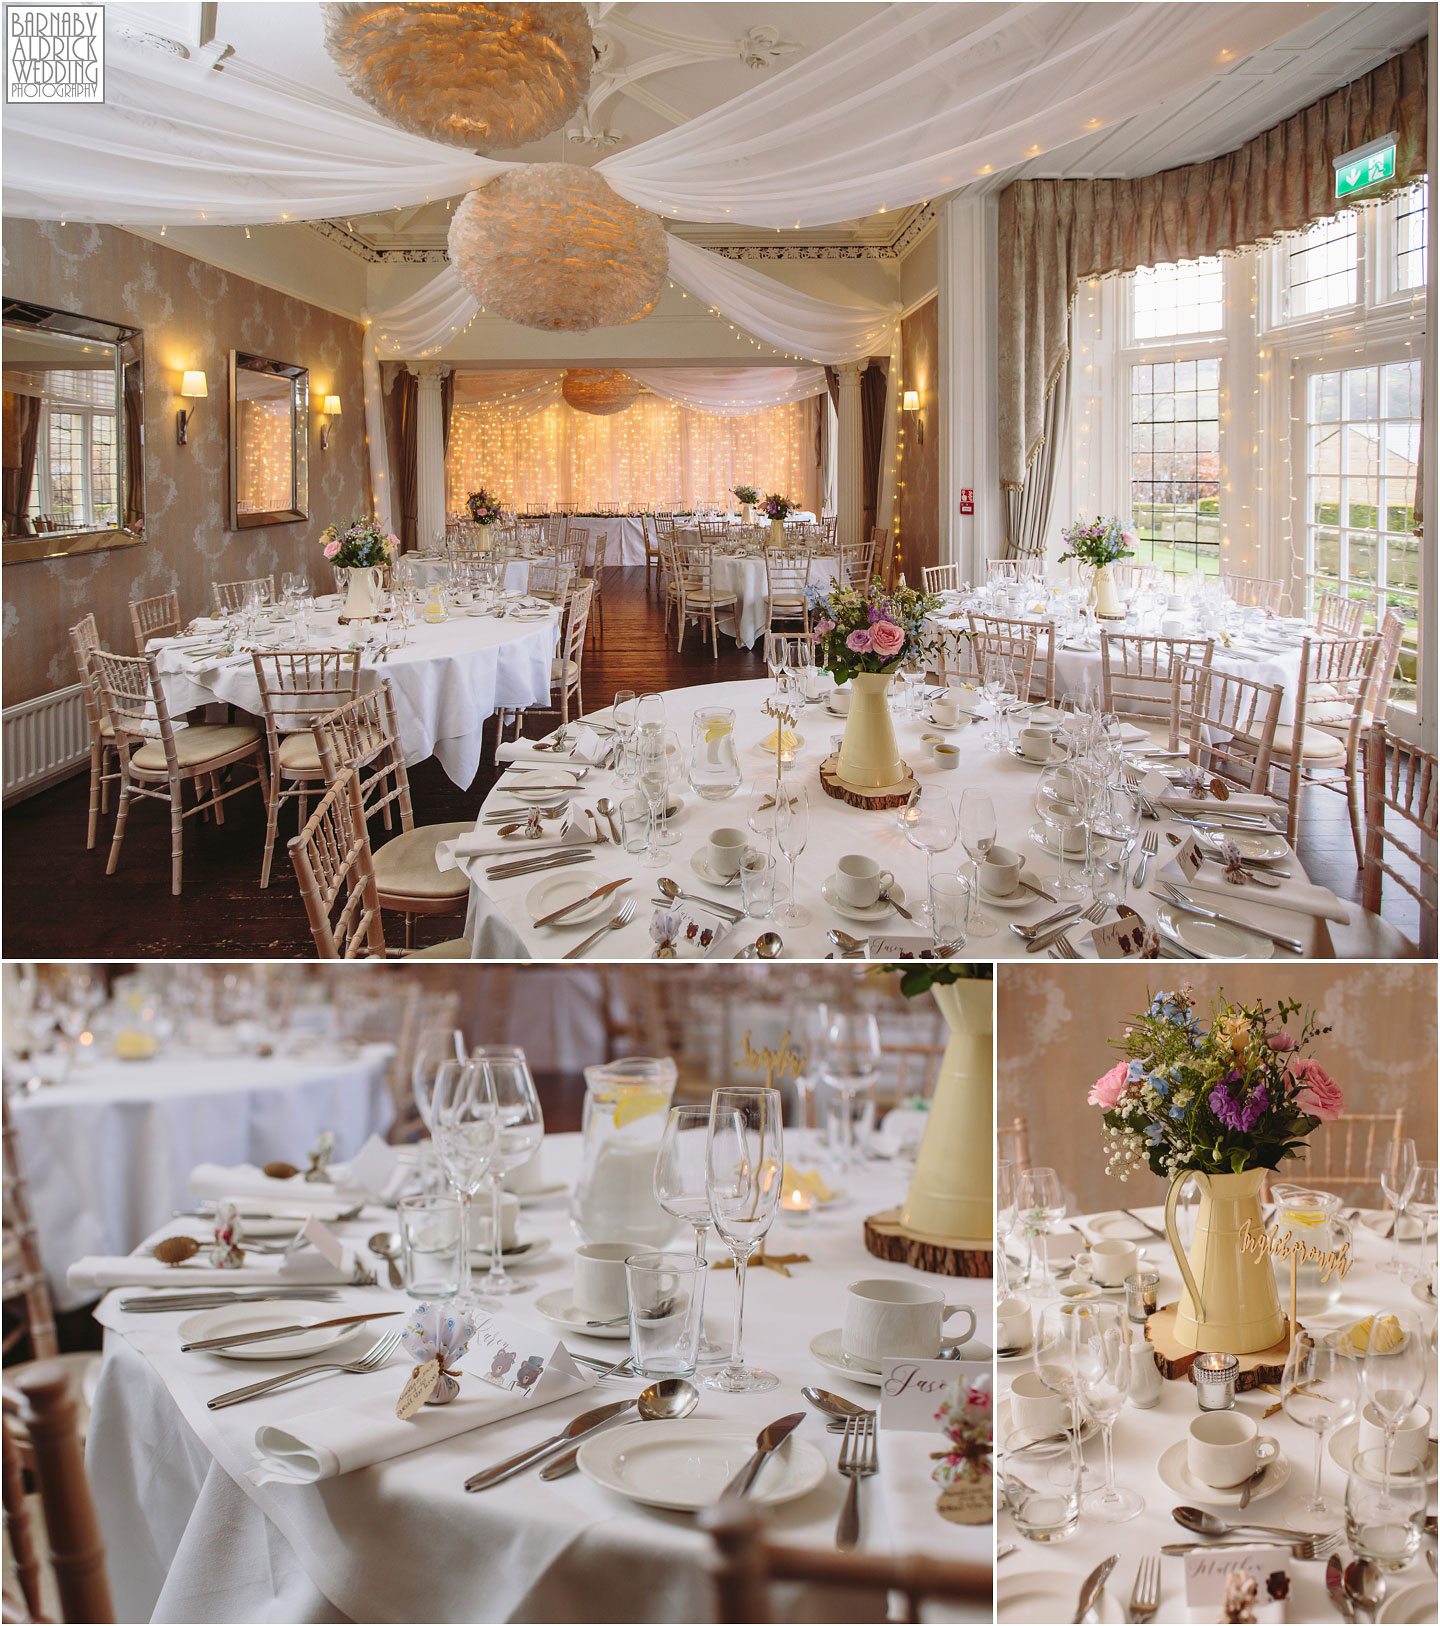 Falcon Manor Settle wedding breakfast room